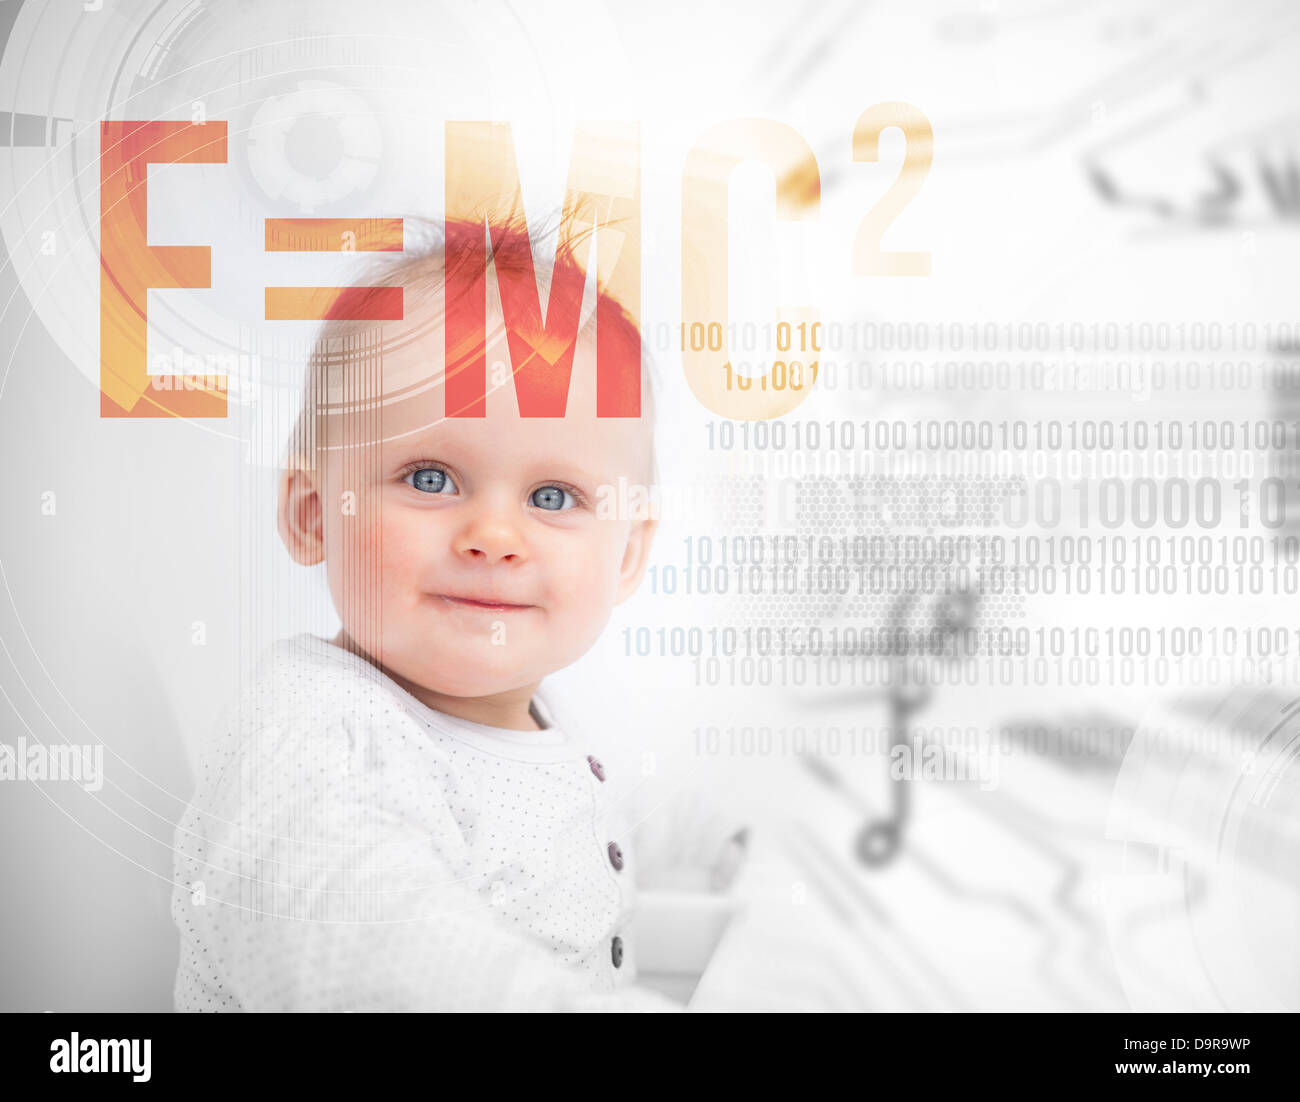 Portrait of a baby next to formula - Stock Image